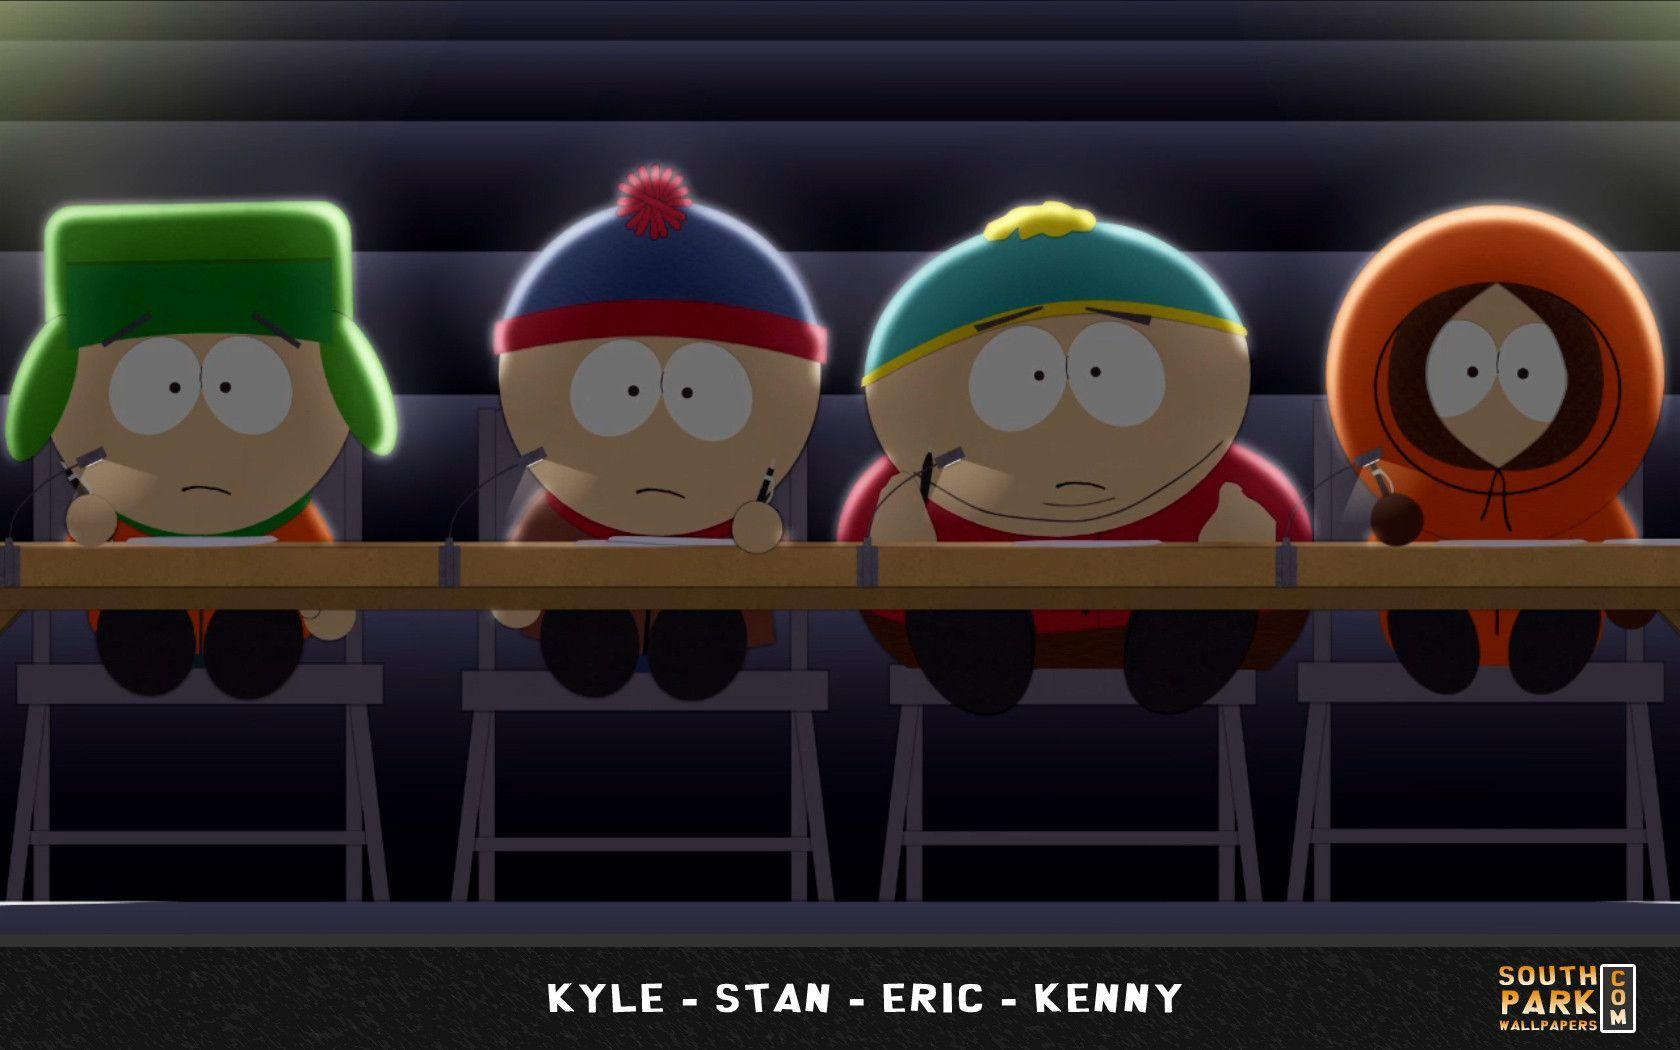 South park wallpapers wallpaper cave - South park wallpaper butters ...